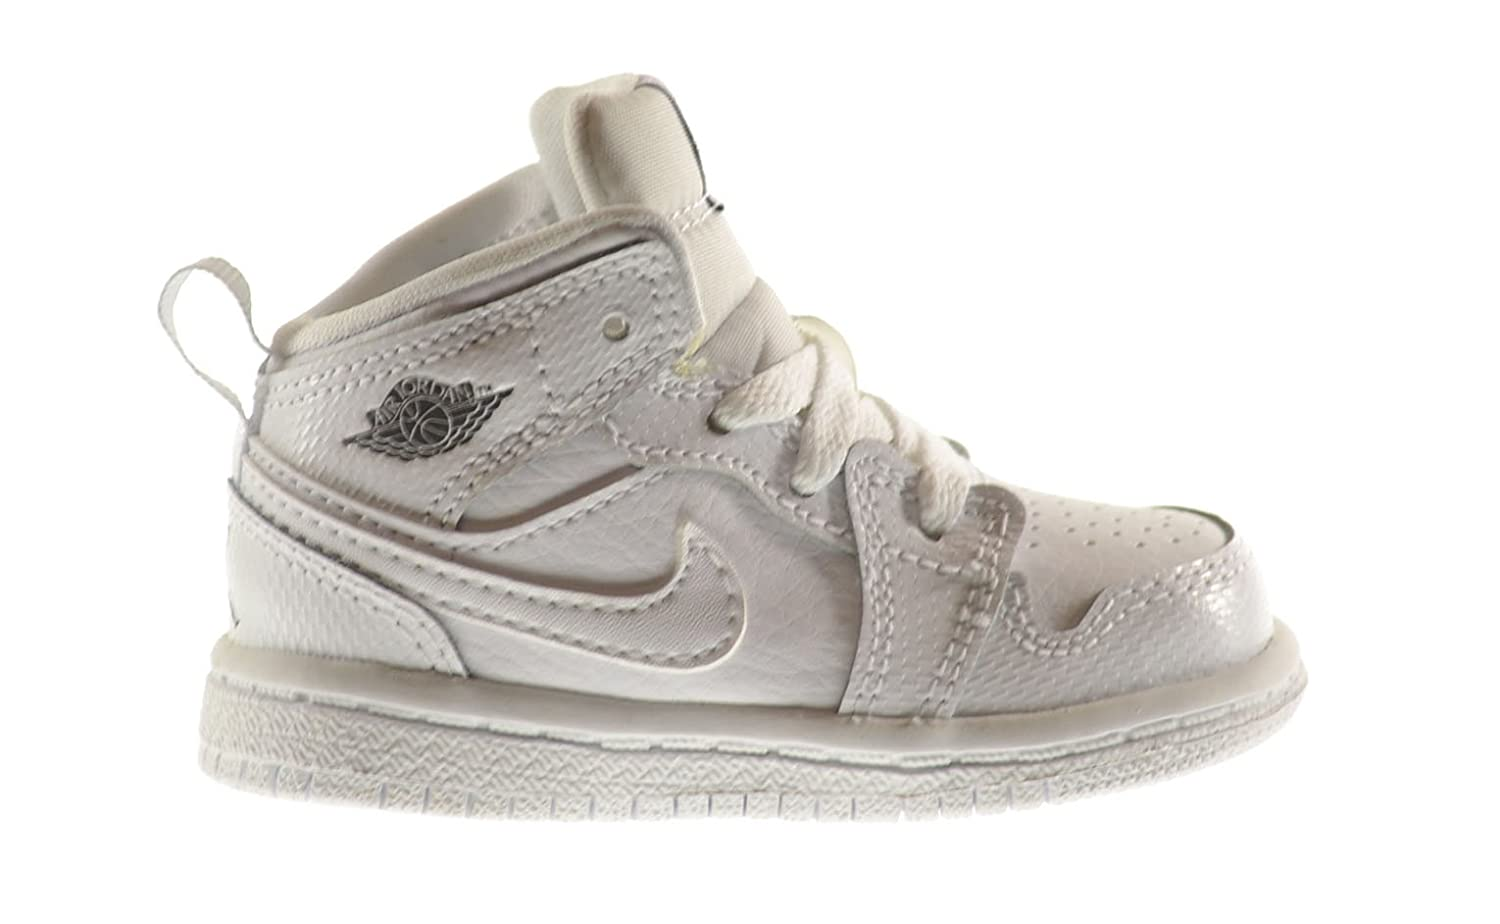 los angeles d8a04 2c9a1 Air Jordan 1 Mid BT Baby Toddler Shoes White/Cool Grey-White 640735-120 (8  M US)   $120 - Buy today!